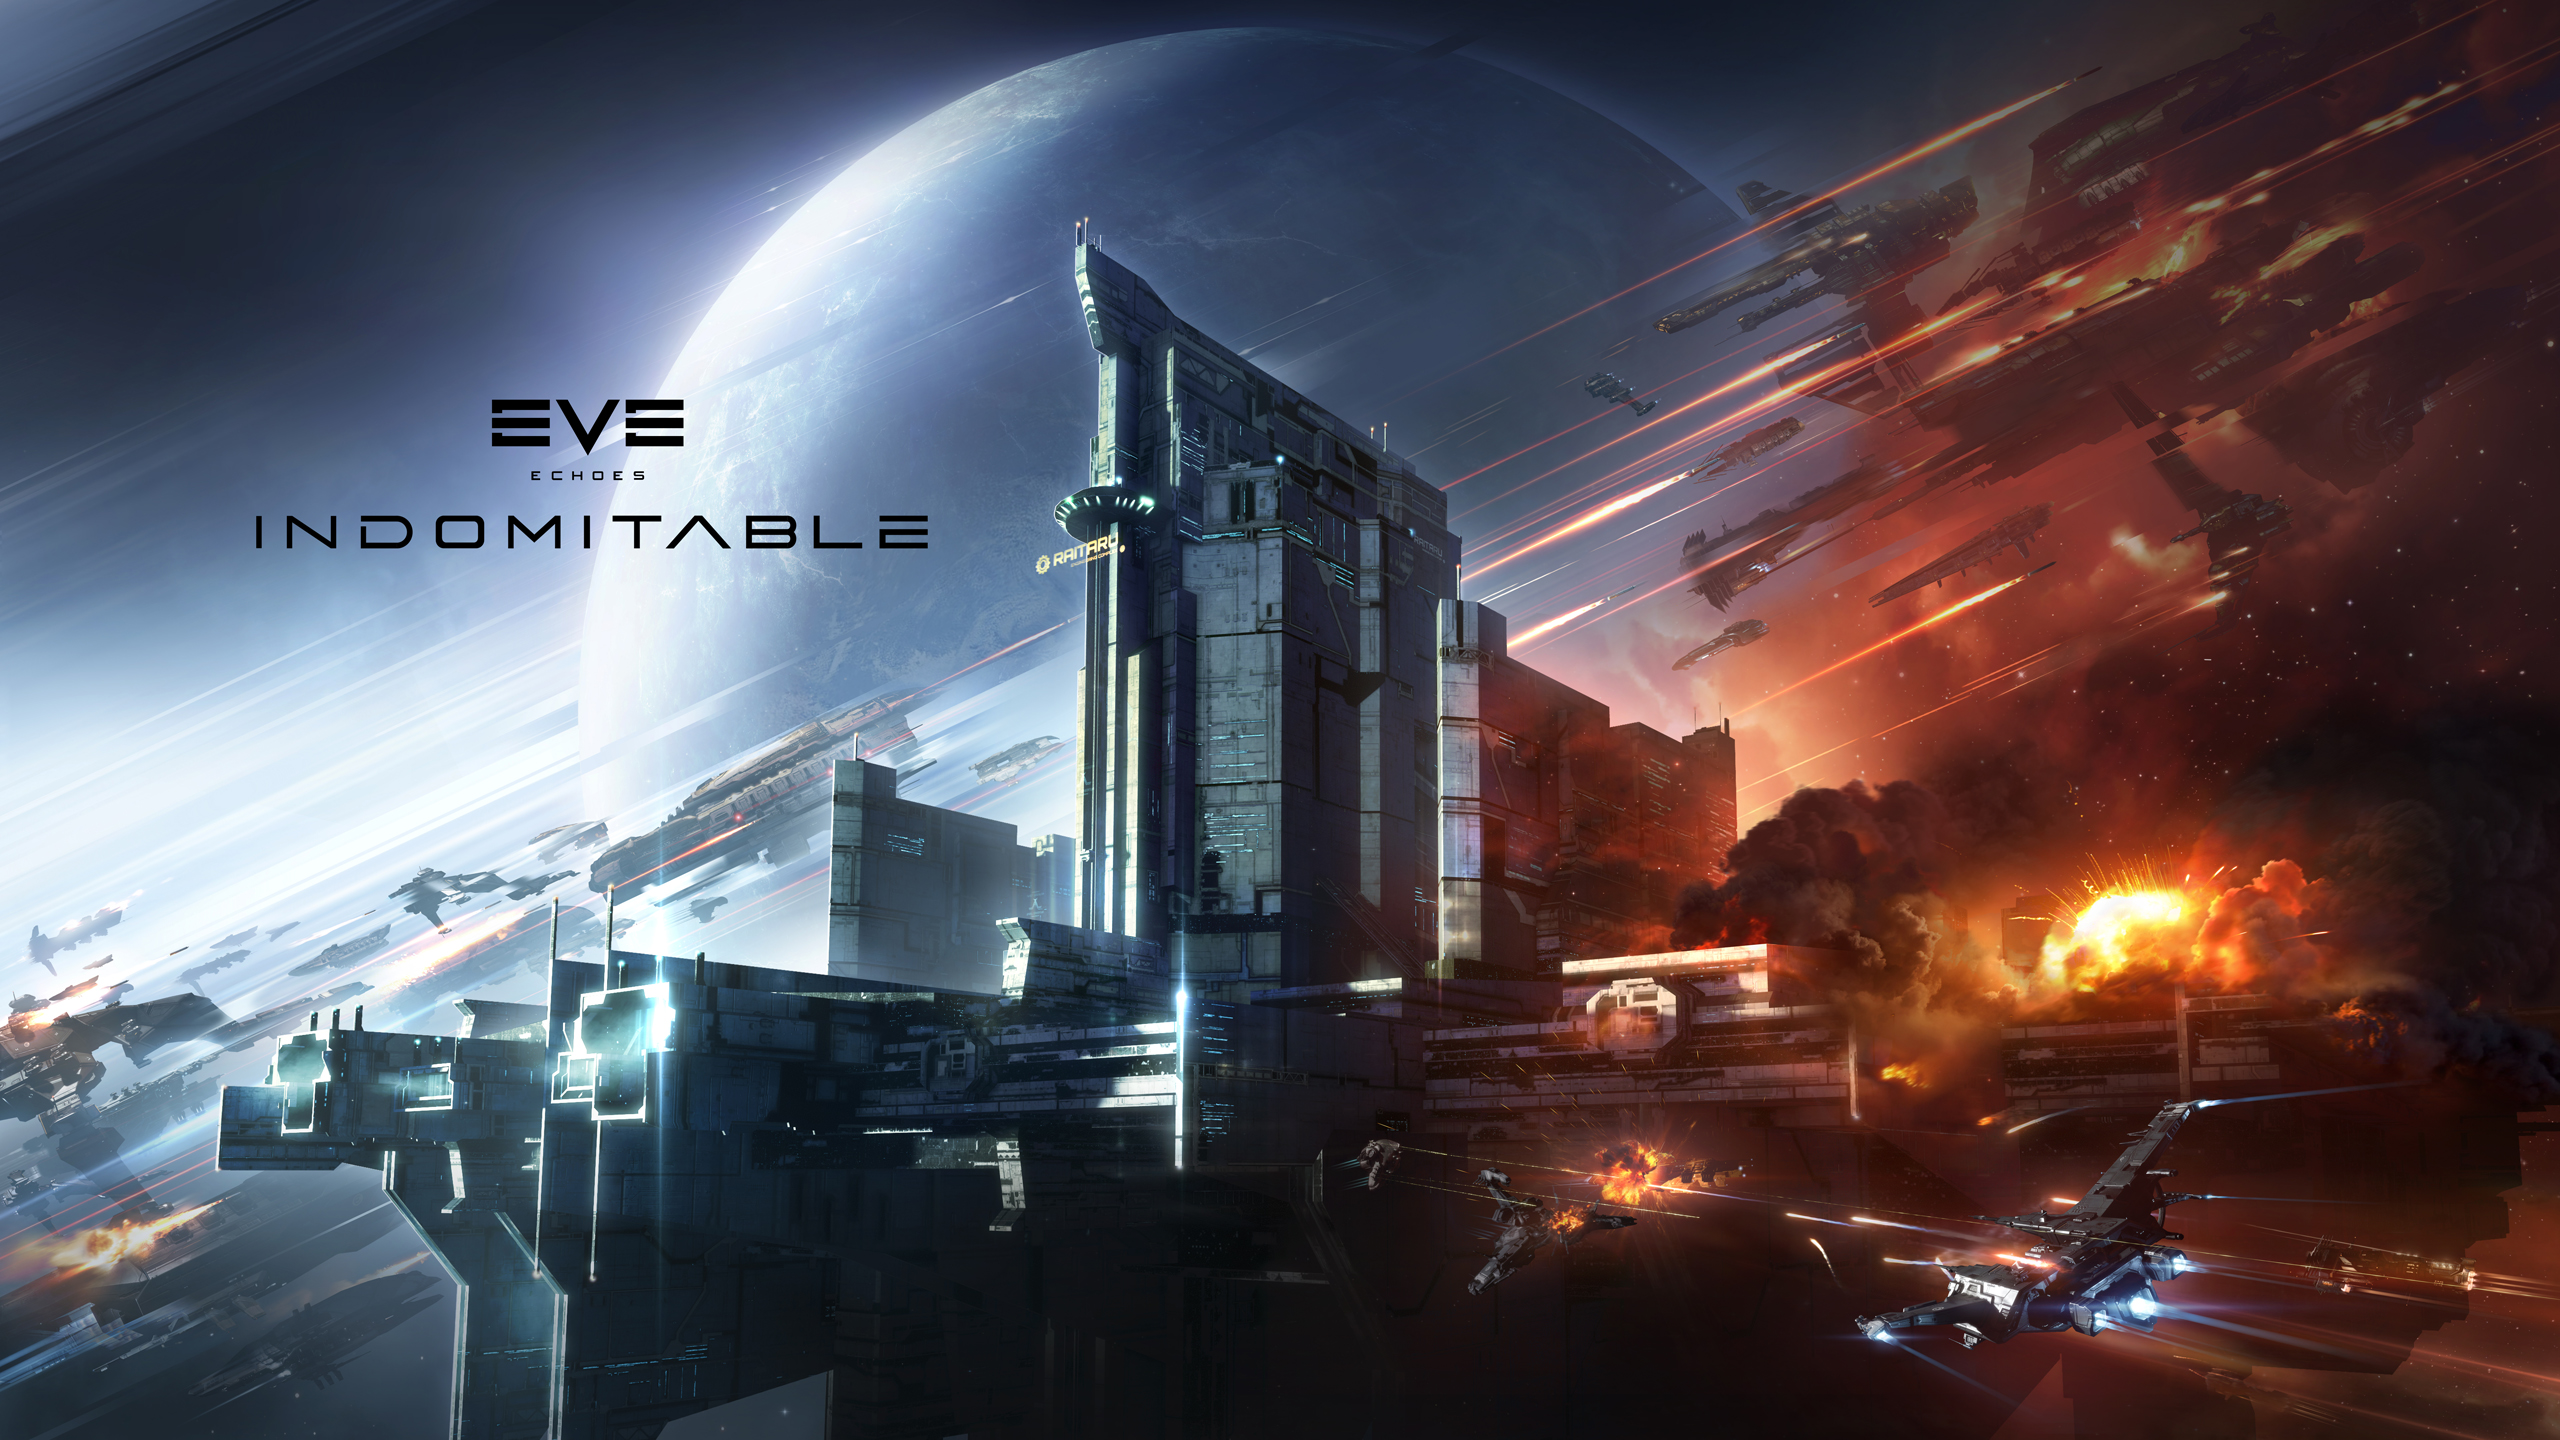 Control the Galaxy & Battle More Players Than Ever Before in The New Expansion for EVE Echoes, INDOMITABLE